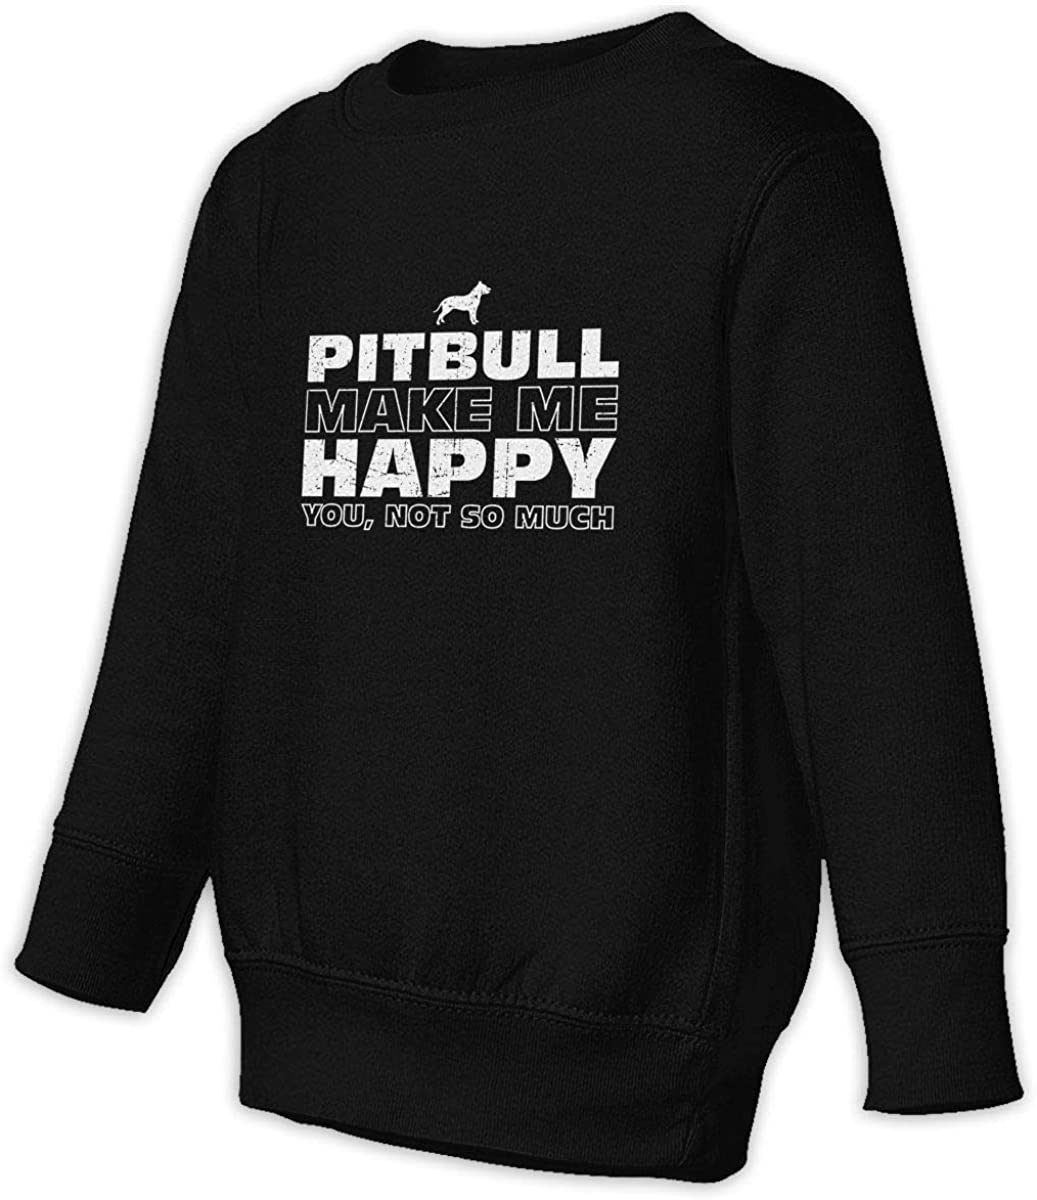 wudici Happy Pitbull Boys Girls Pullover Sweaters Crewneck Sweatshirts Clothes for 2-6 Years Old Children